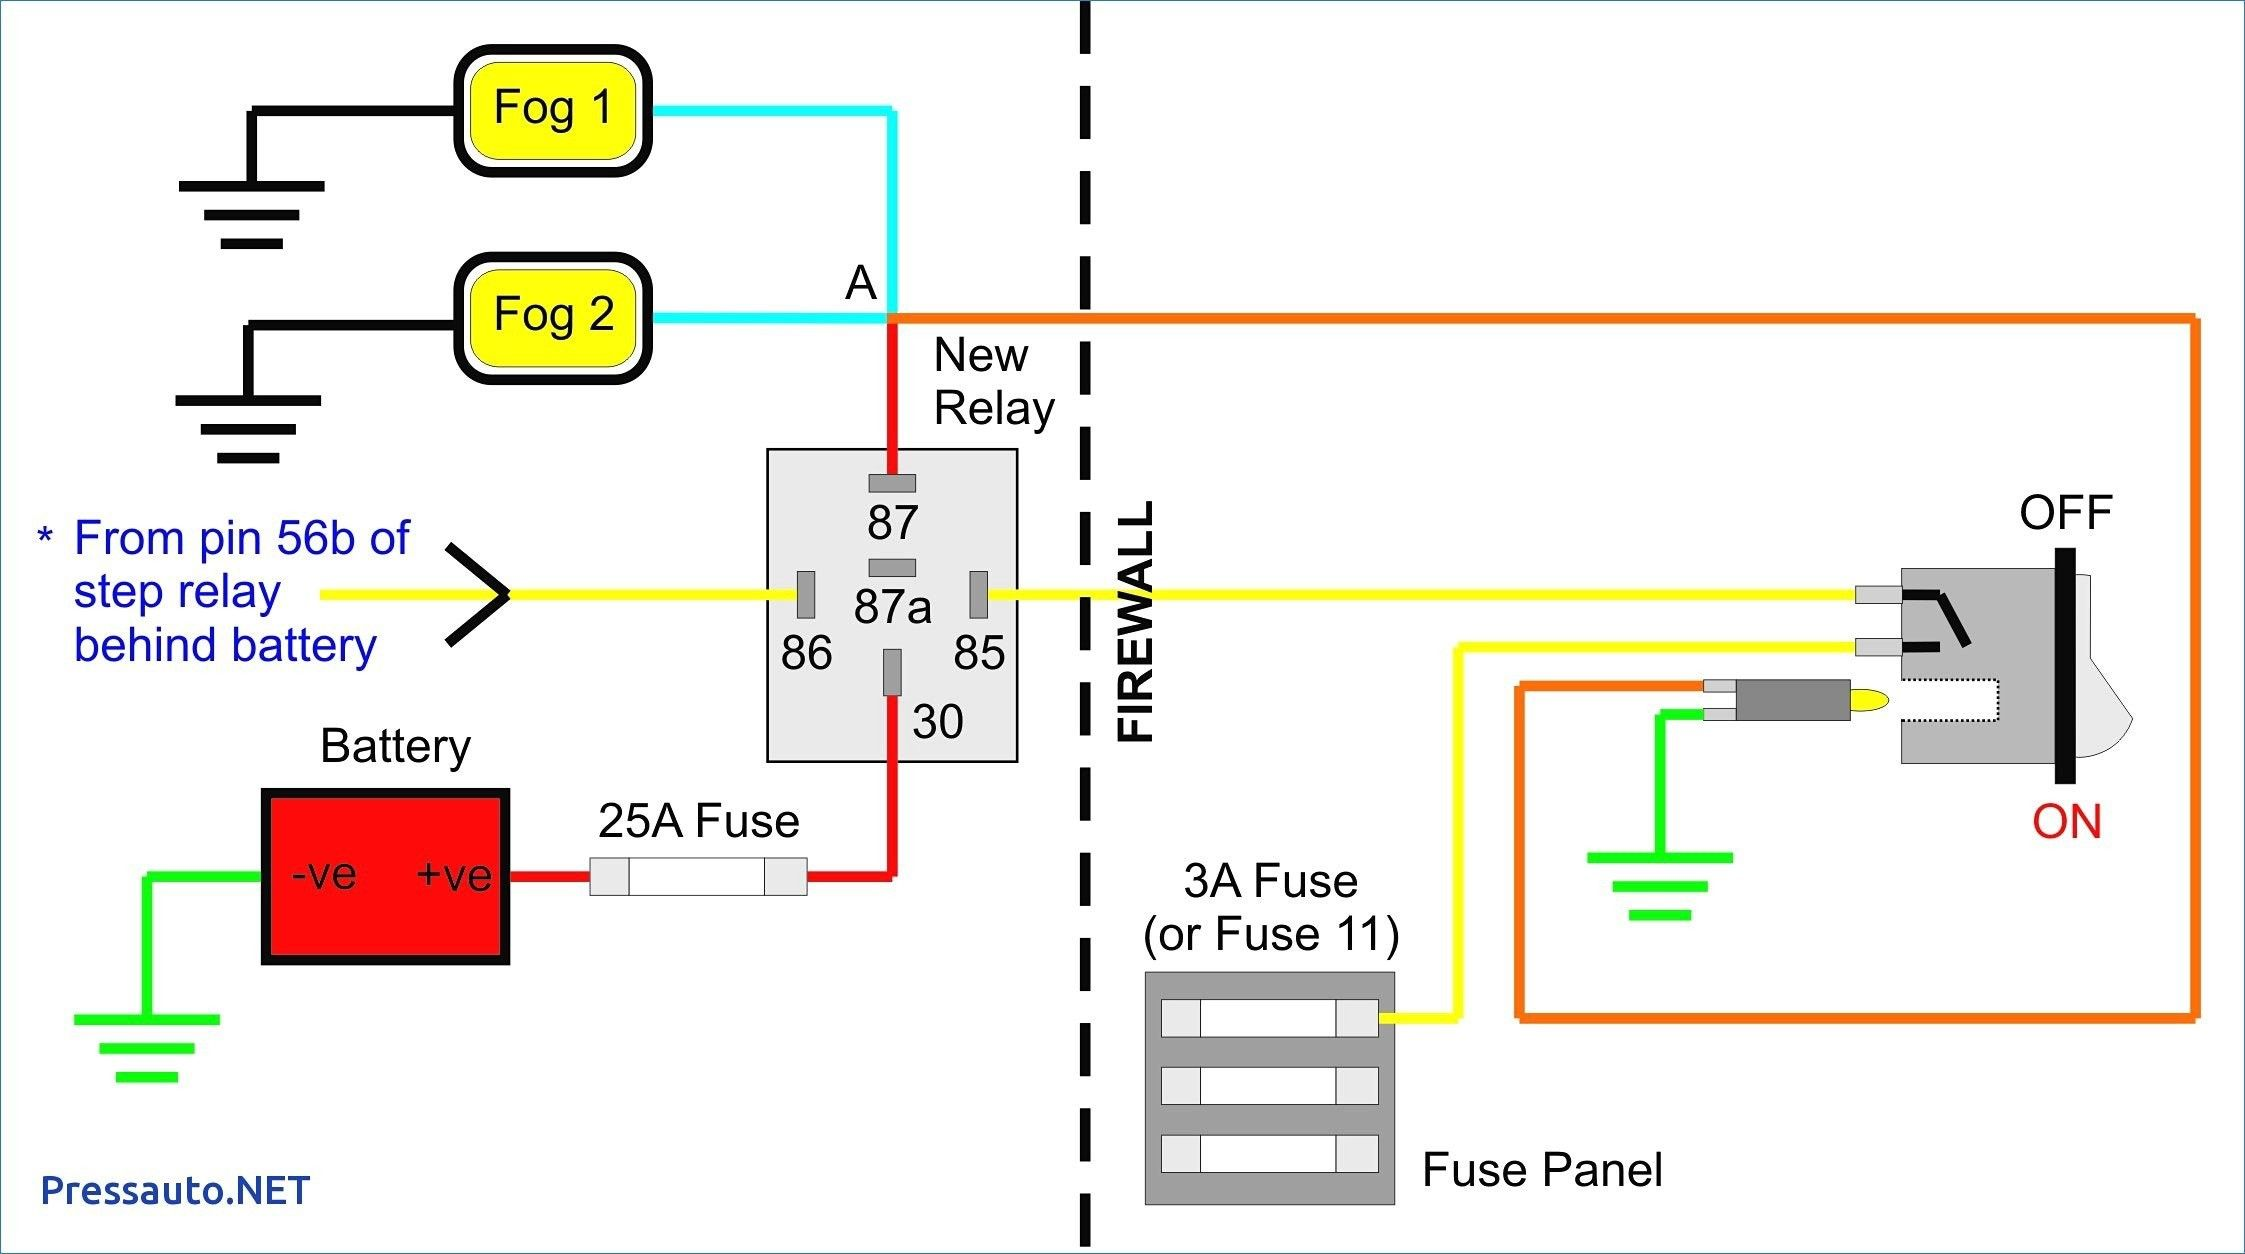 Best Of Wiring Diagram for Fog Lights without Relay # ...